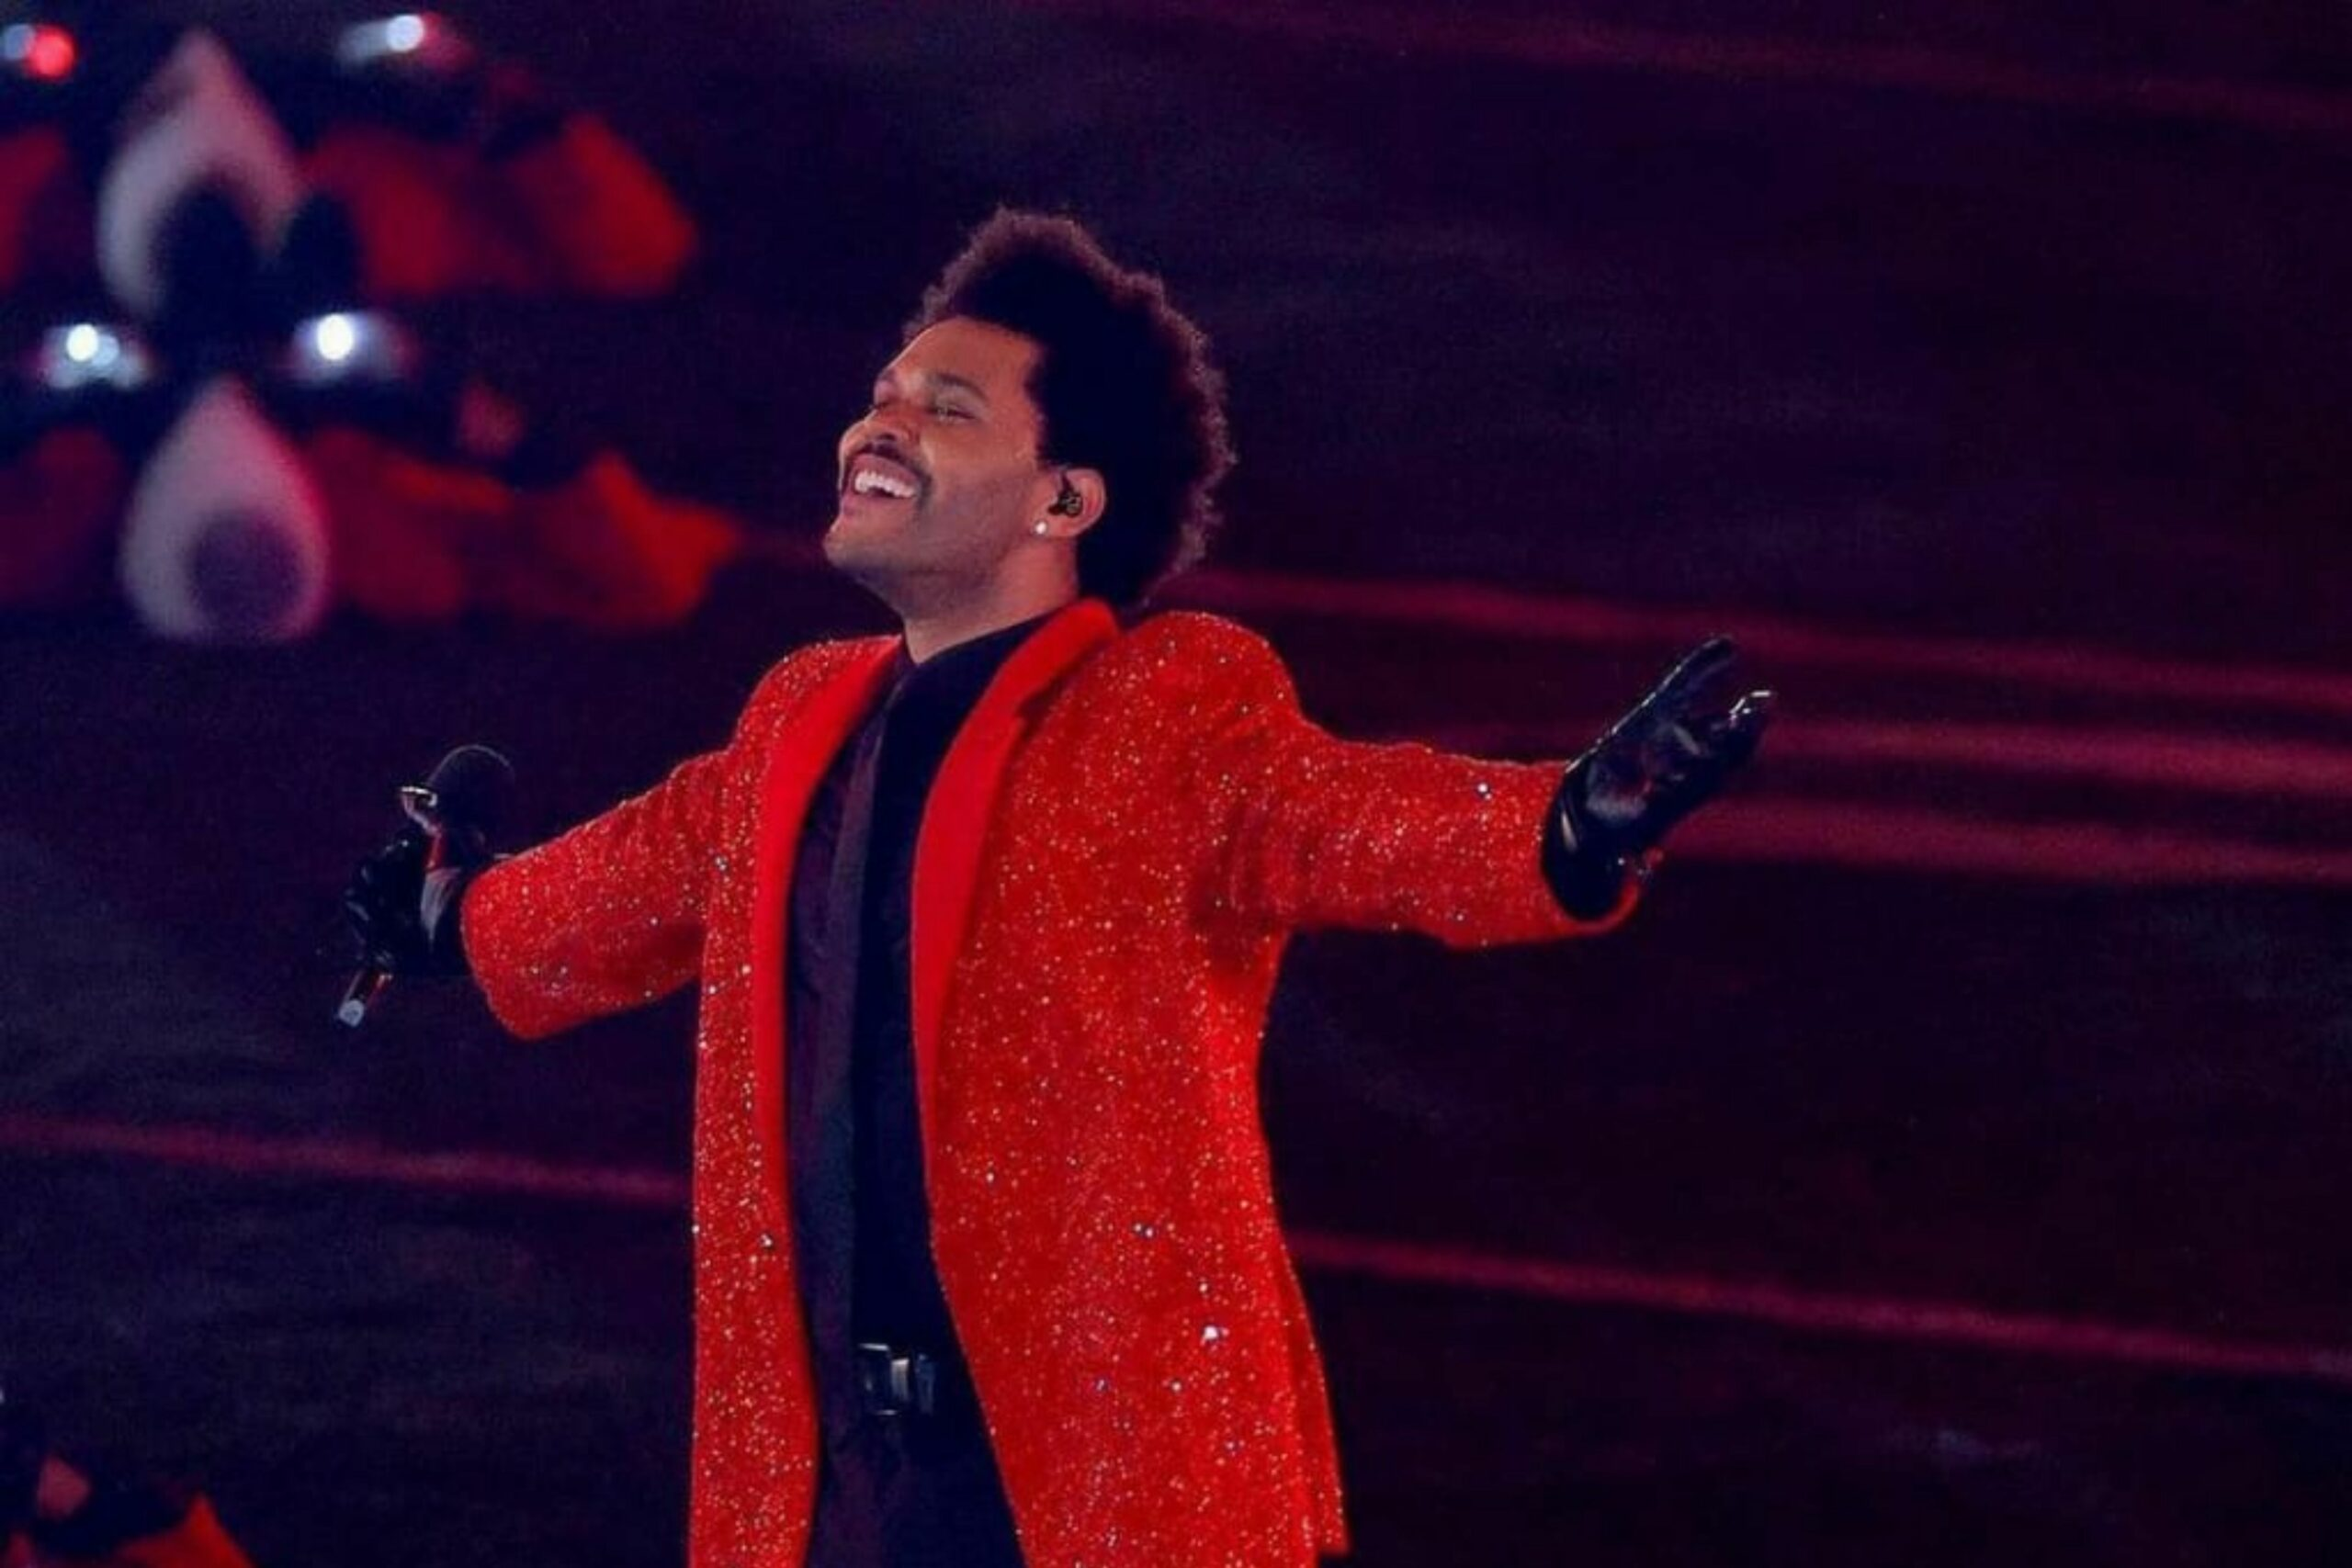 The Weeknd marks the history of Super Bowl with a mind-blowing show.